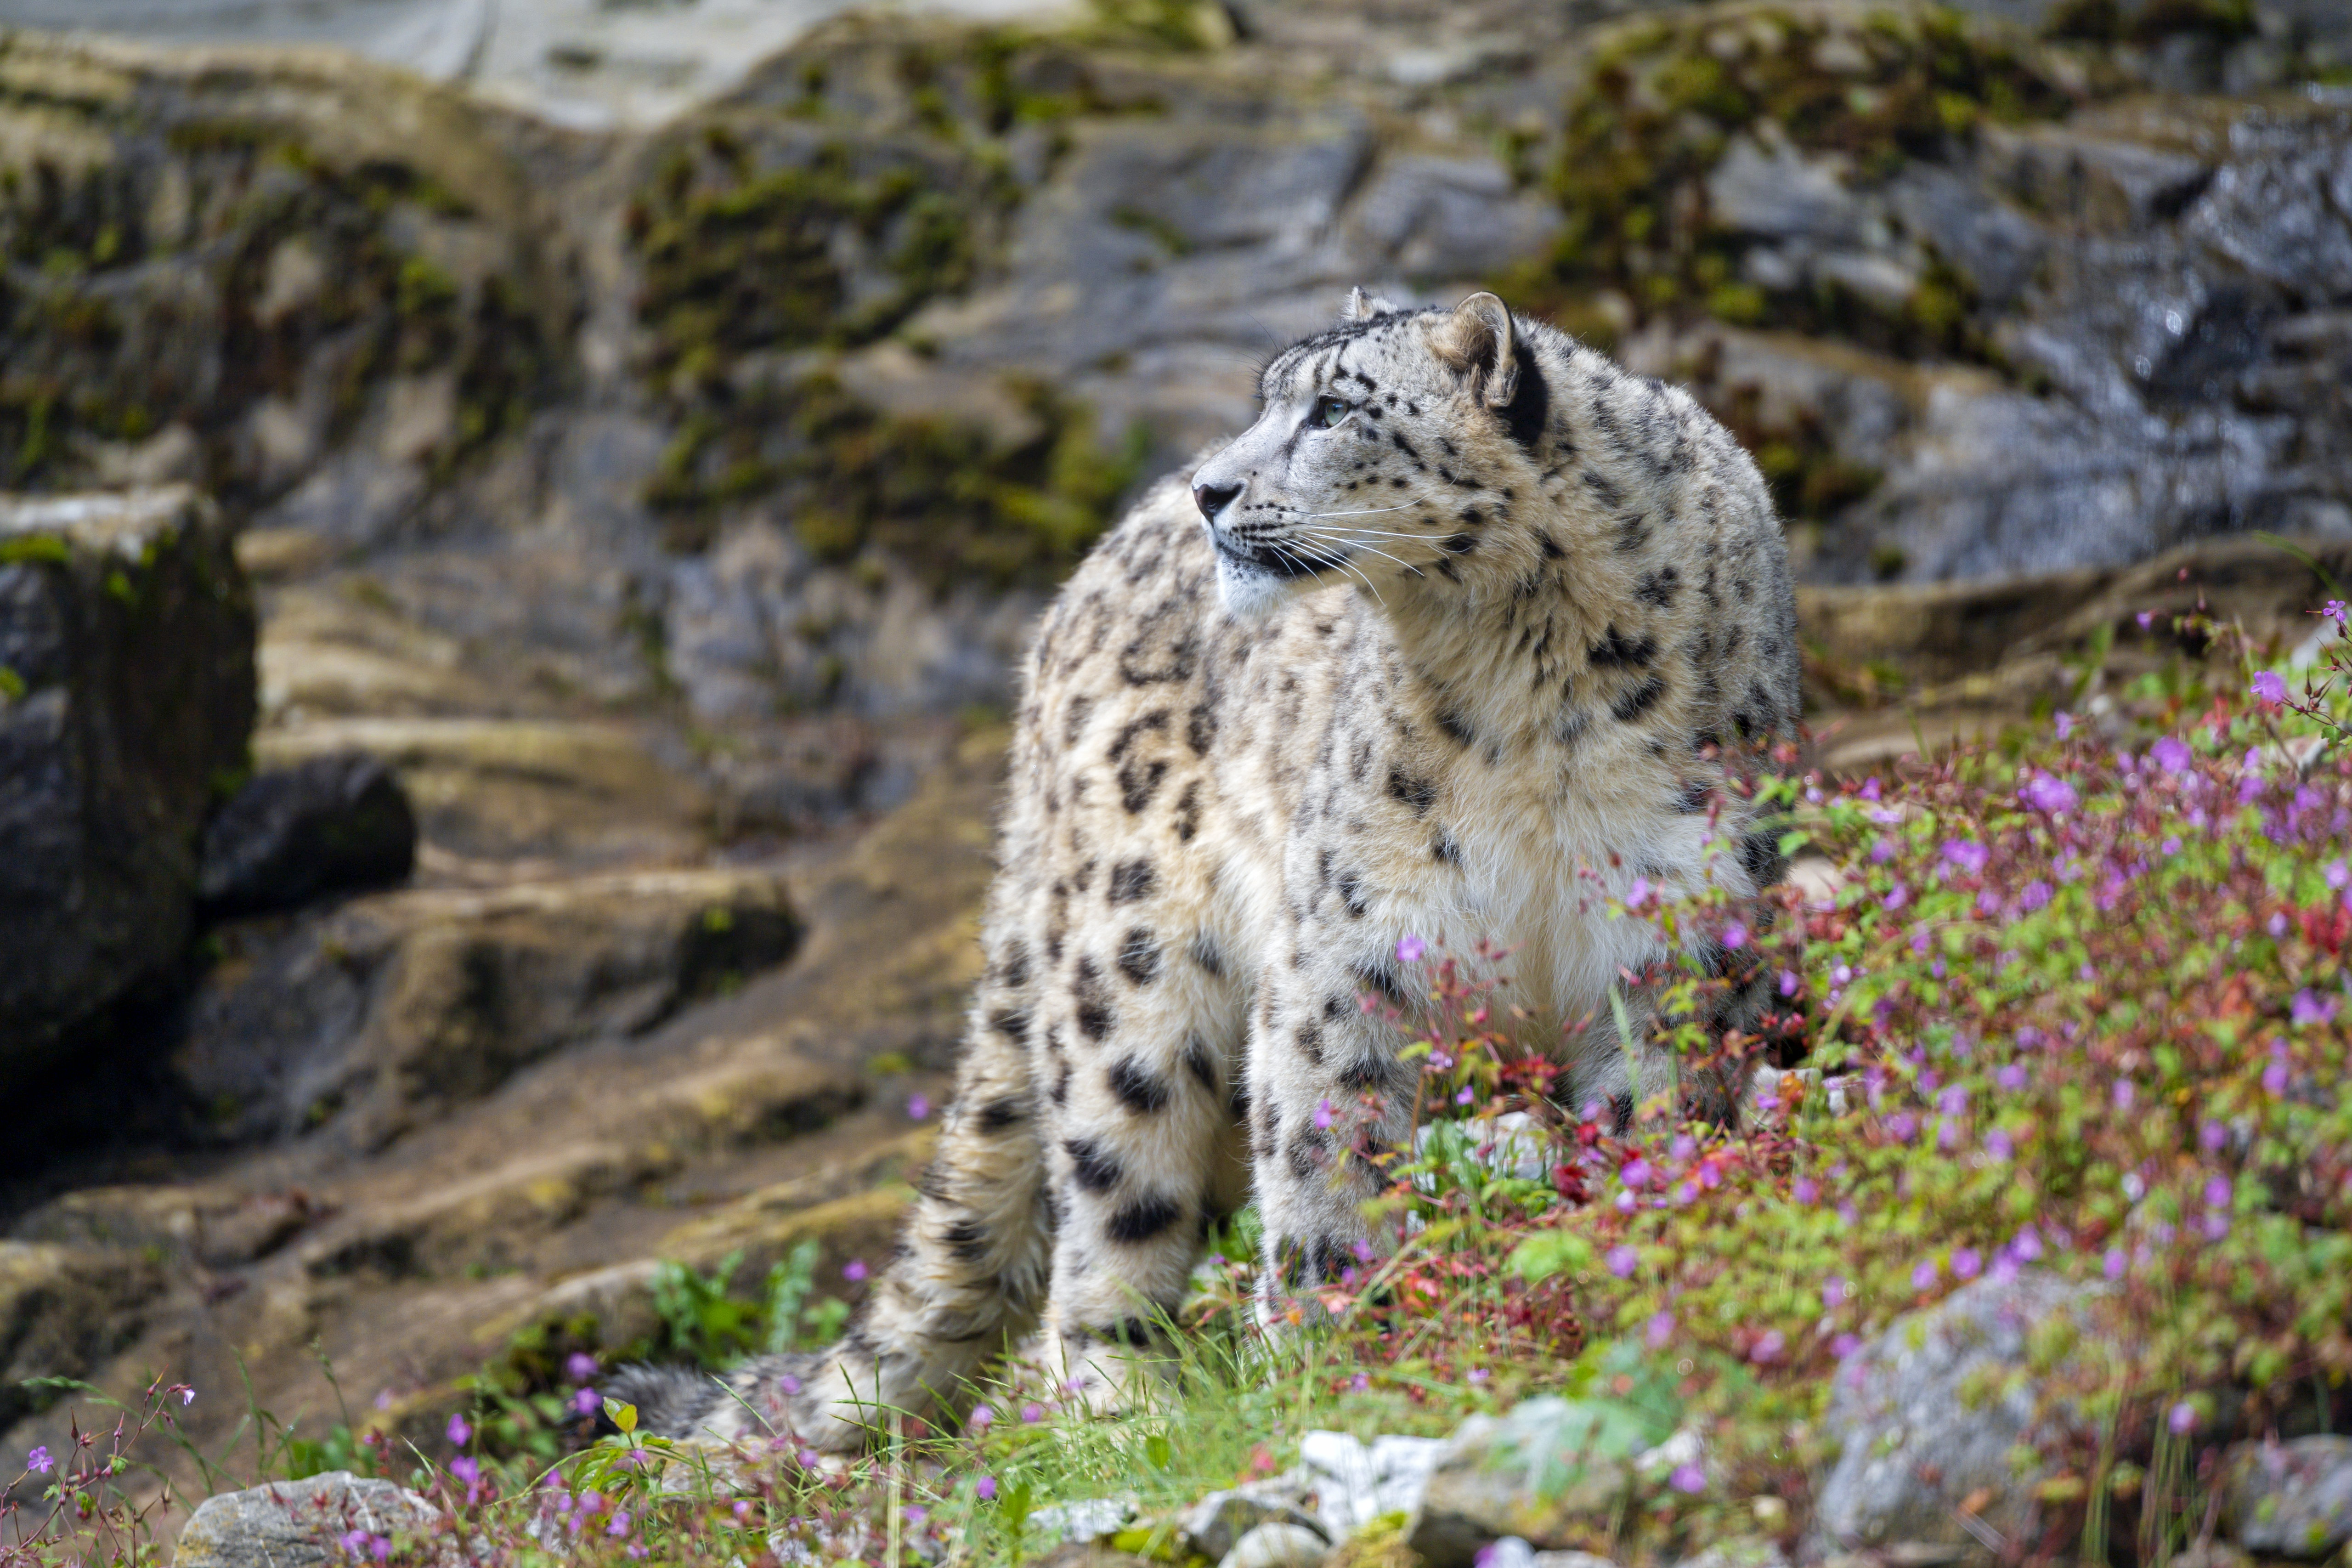 144306 download wallpaper Animals, Big Cat, Predator, Rocks, Flowers, Snow Leopard screensavers and pictures for free